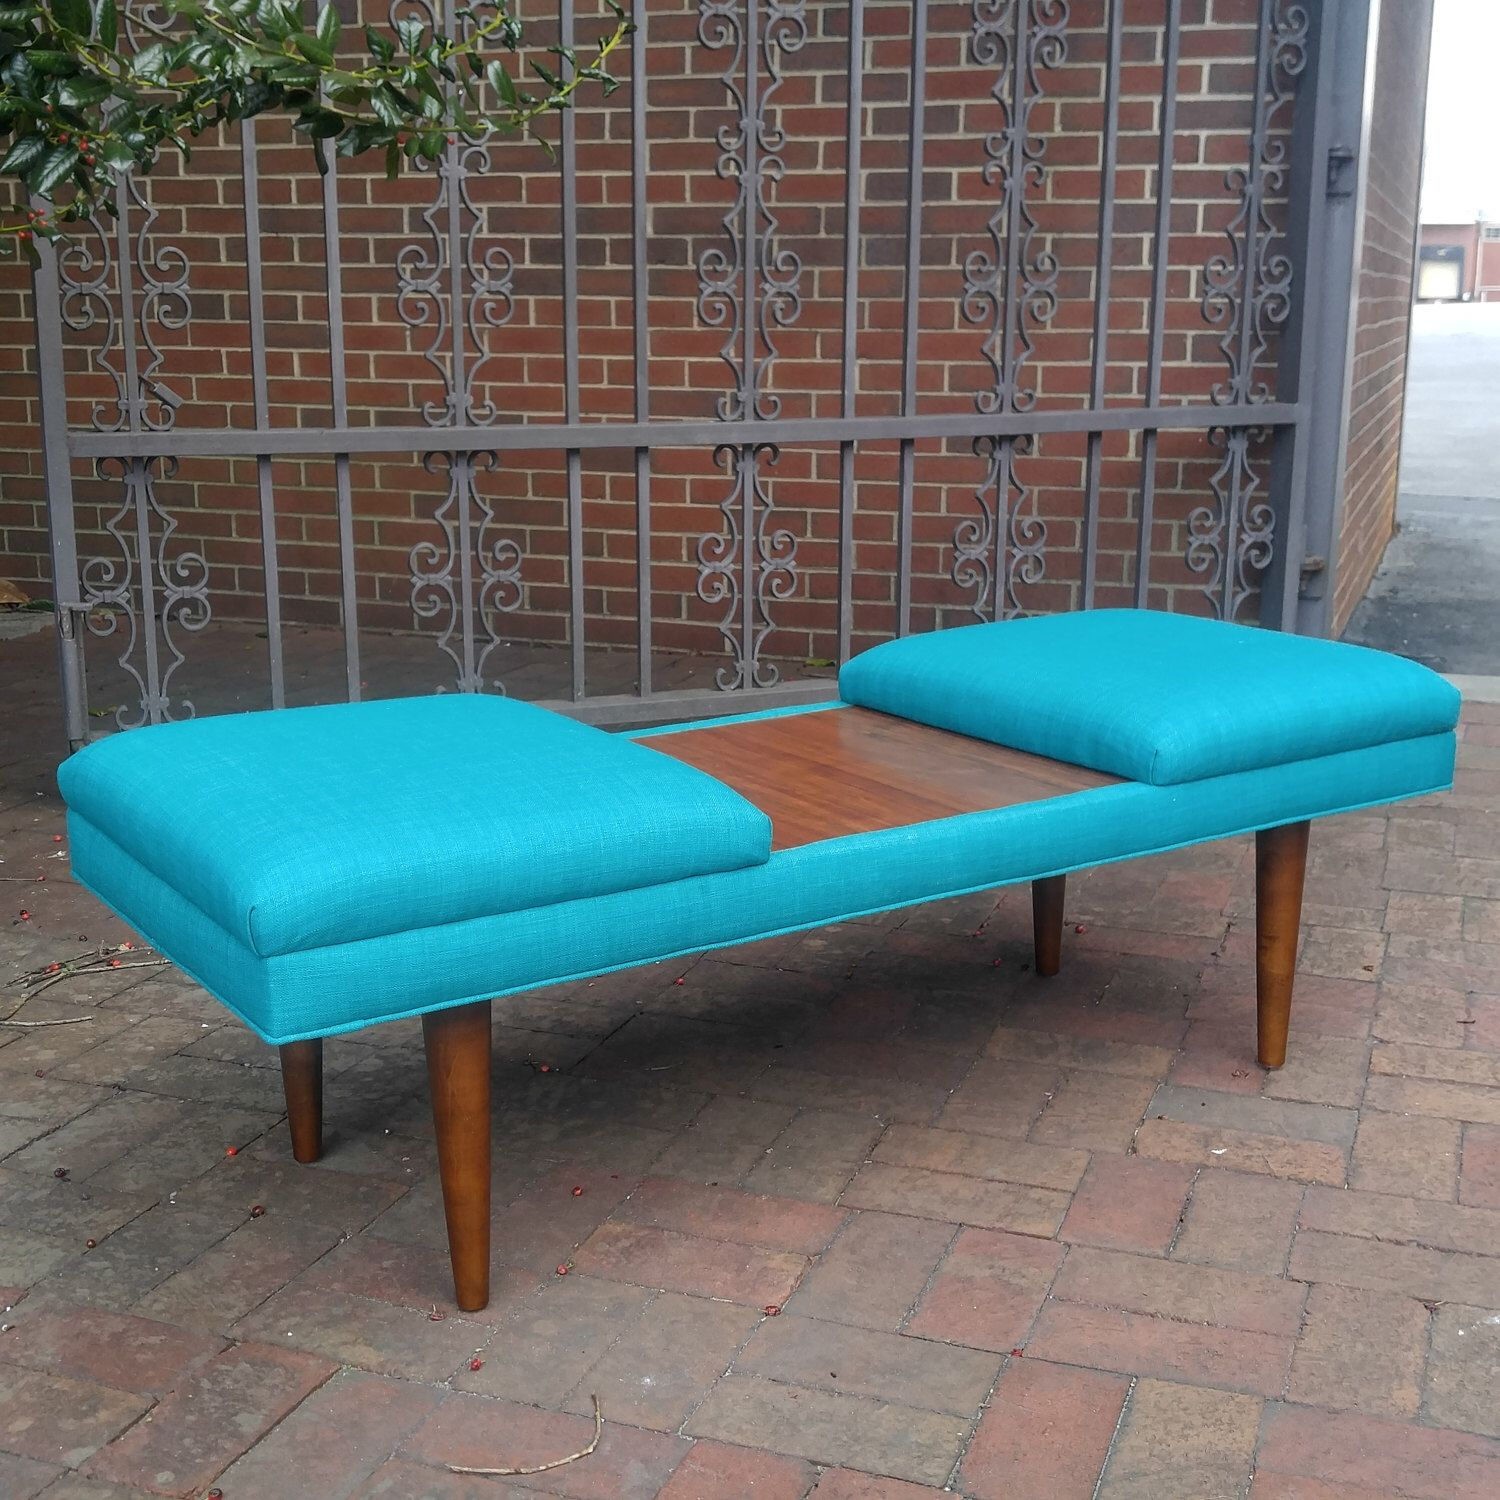 Channel Tufted Retro Teal Ottoman Acacia Frame Design 59 Inc Etsy Upholstered Coffee Tables Retro Coffee Tables Unfinished Wood Furniture [ 1500 x 1500 Pixel ]